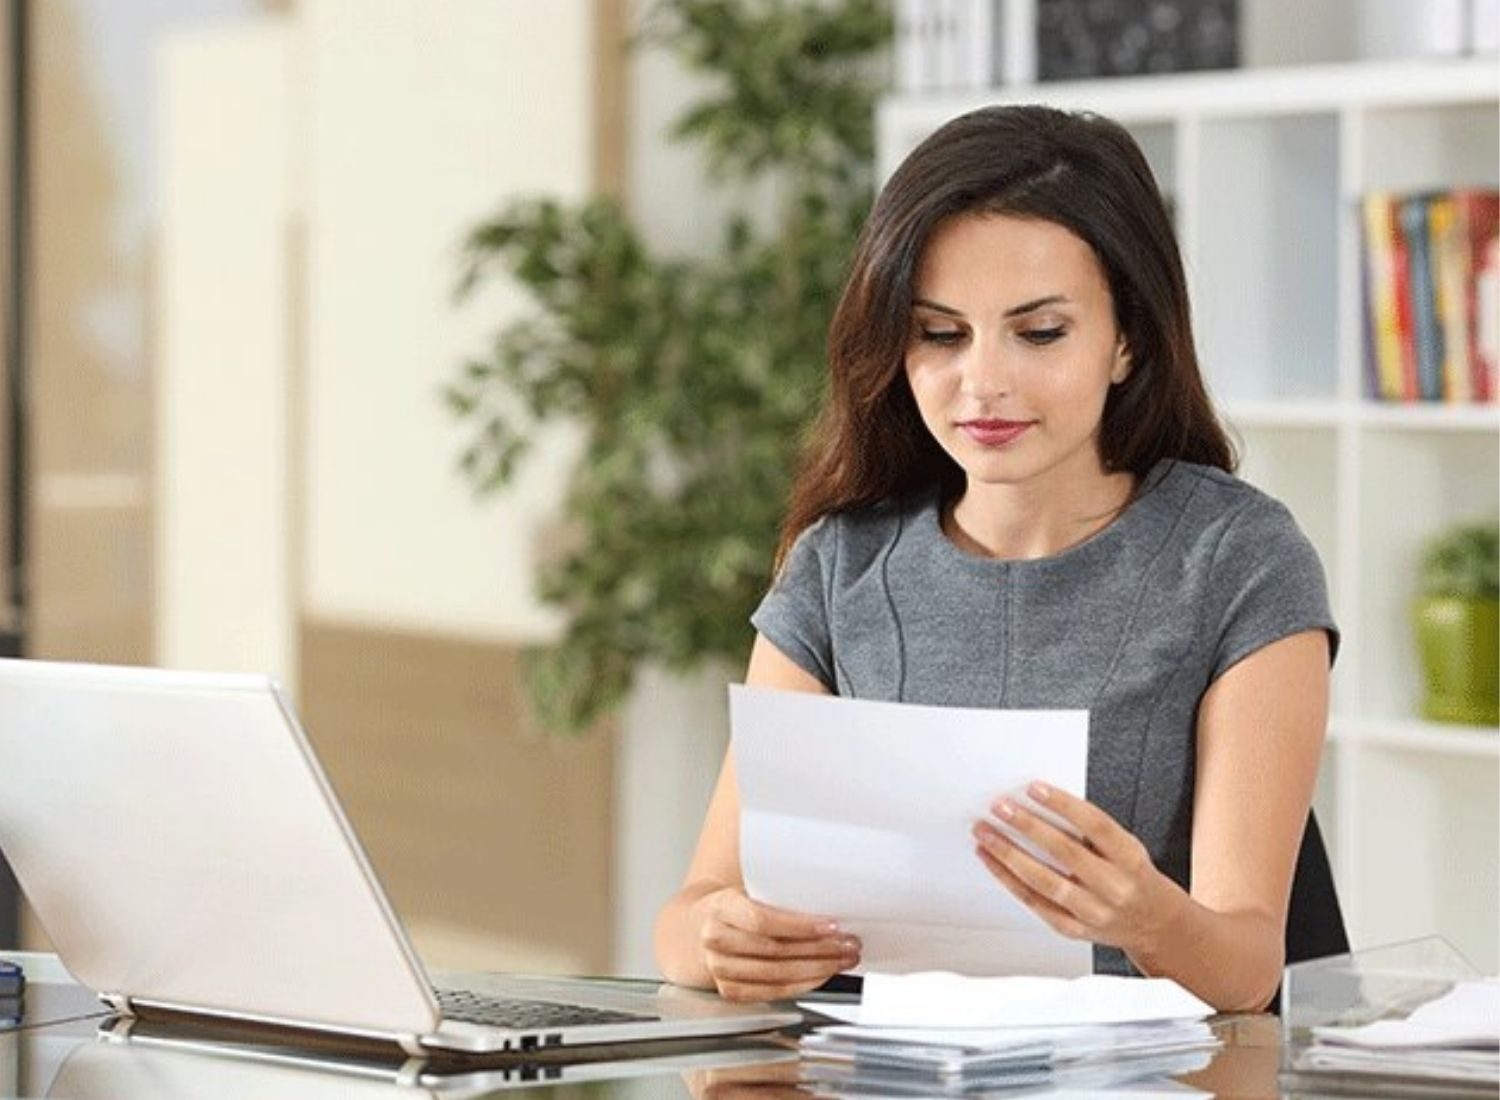 What Benefits An Aspirant Will Get By Working As An IBPS Clerk?